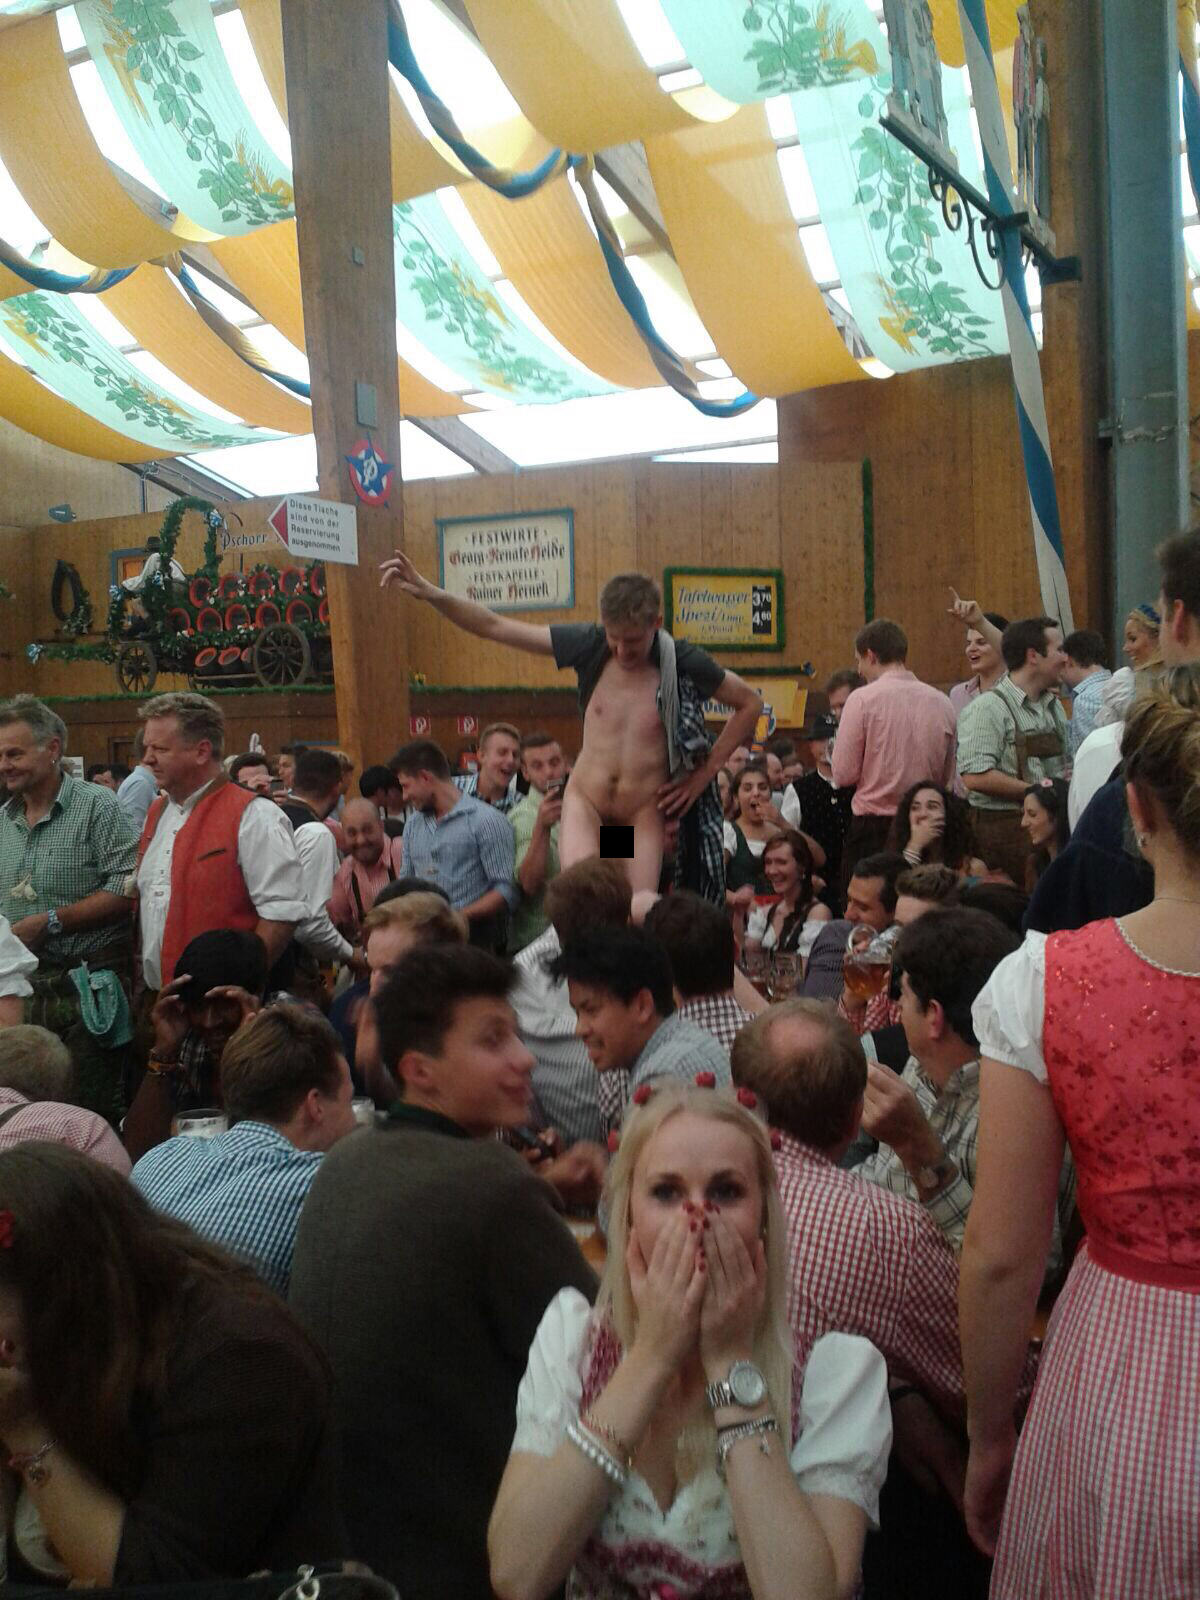 UNILAD okt177079 The Classic And Messy Moments Of Oktoberfest 2015 (NSFW)